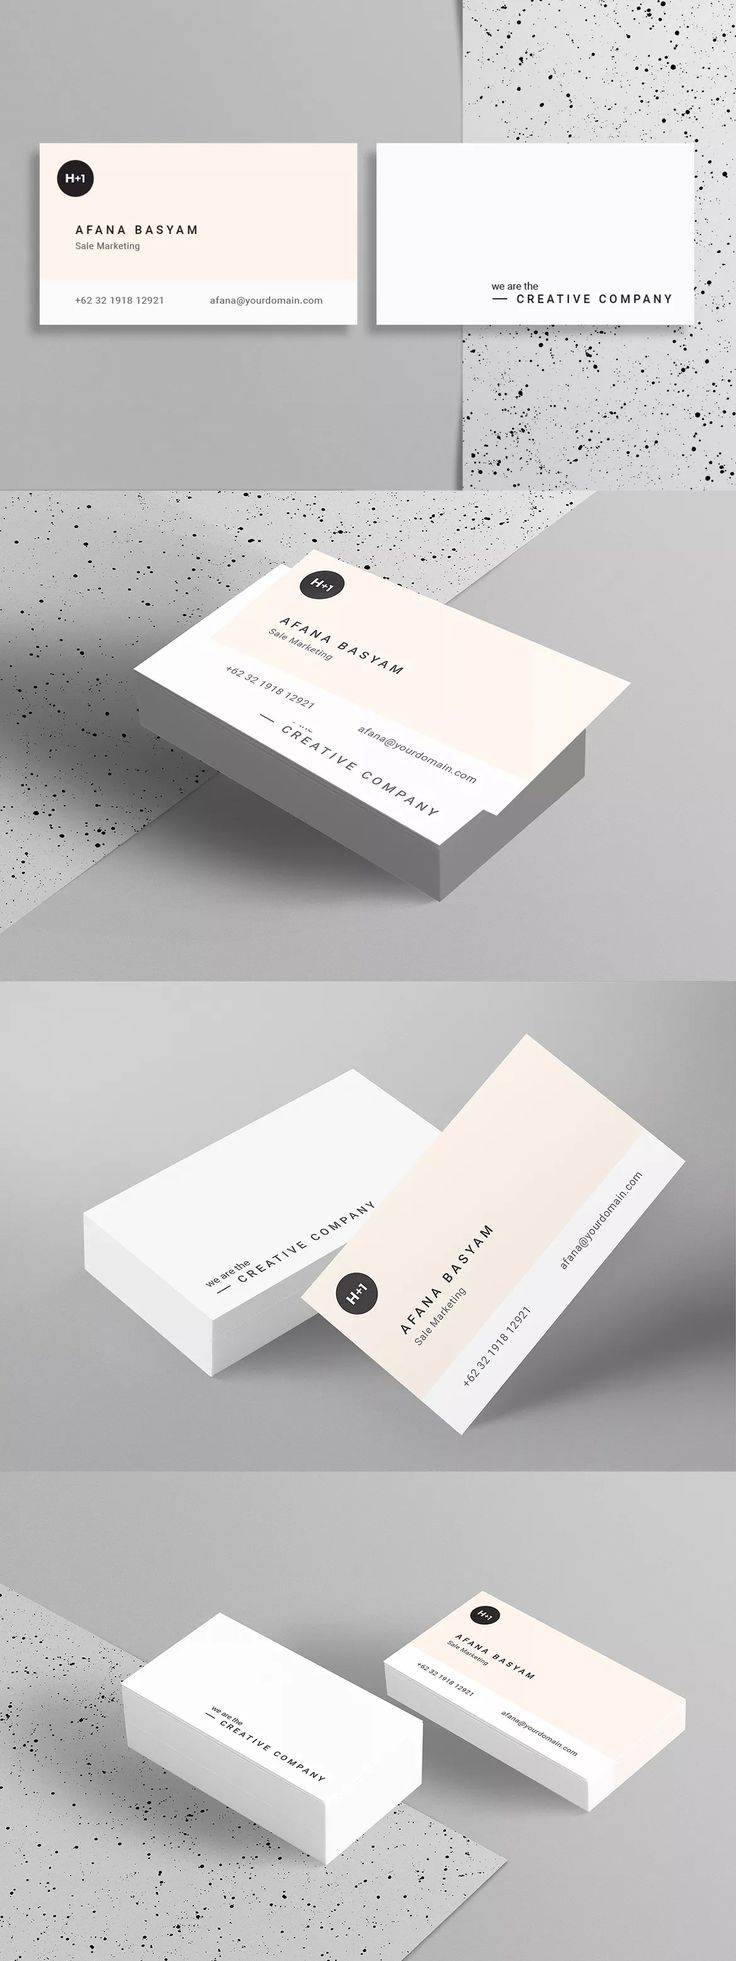 The Best Business Card Template Images On Pinterest Business - Business card template indd